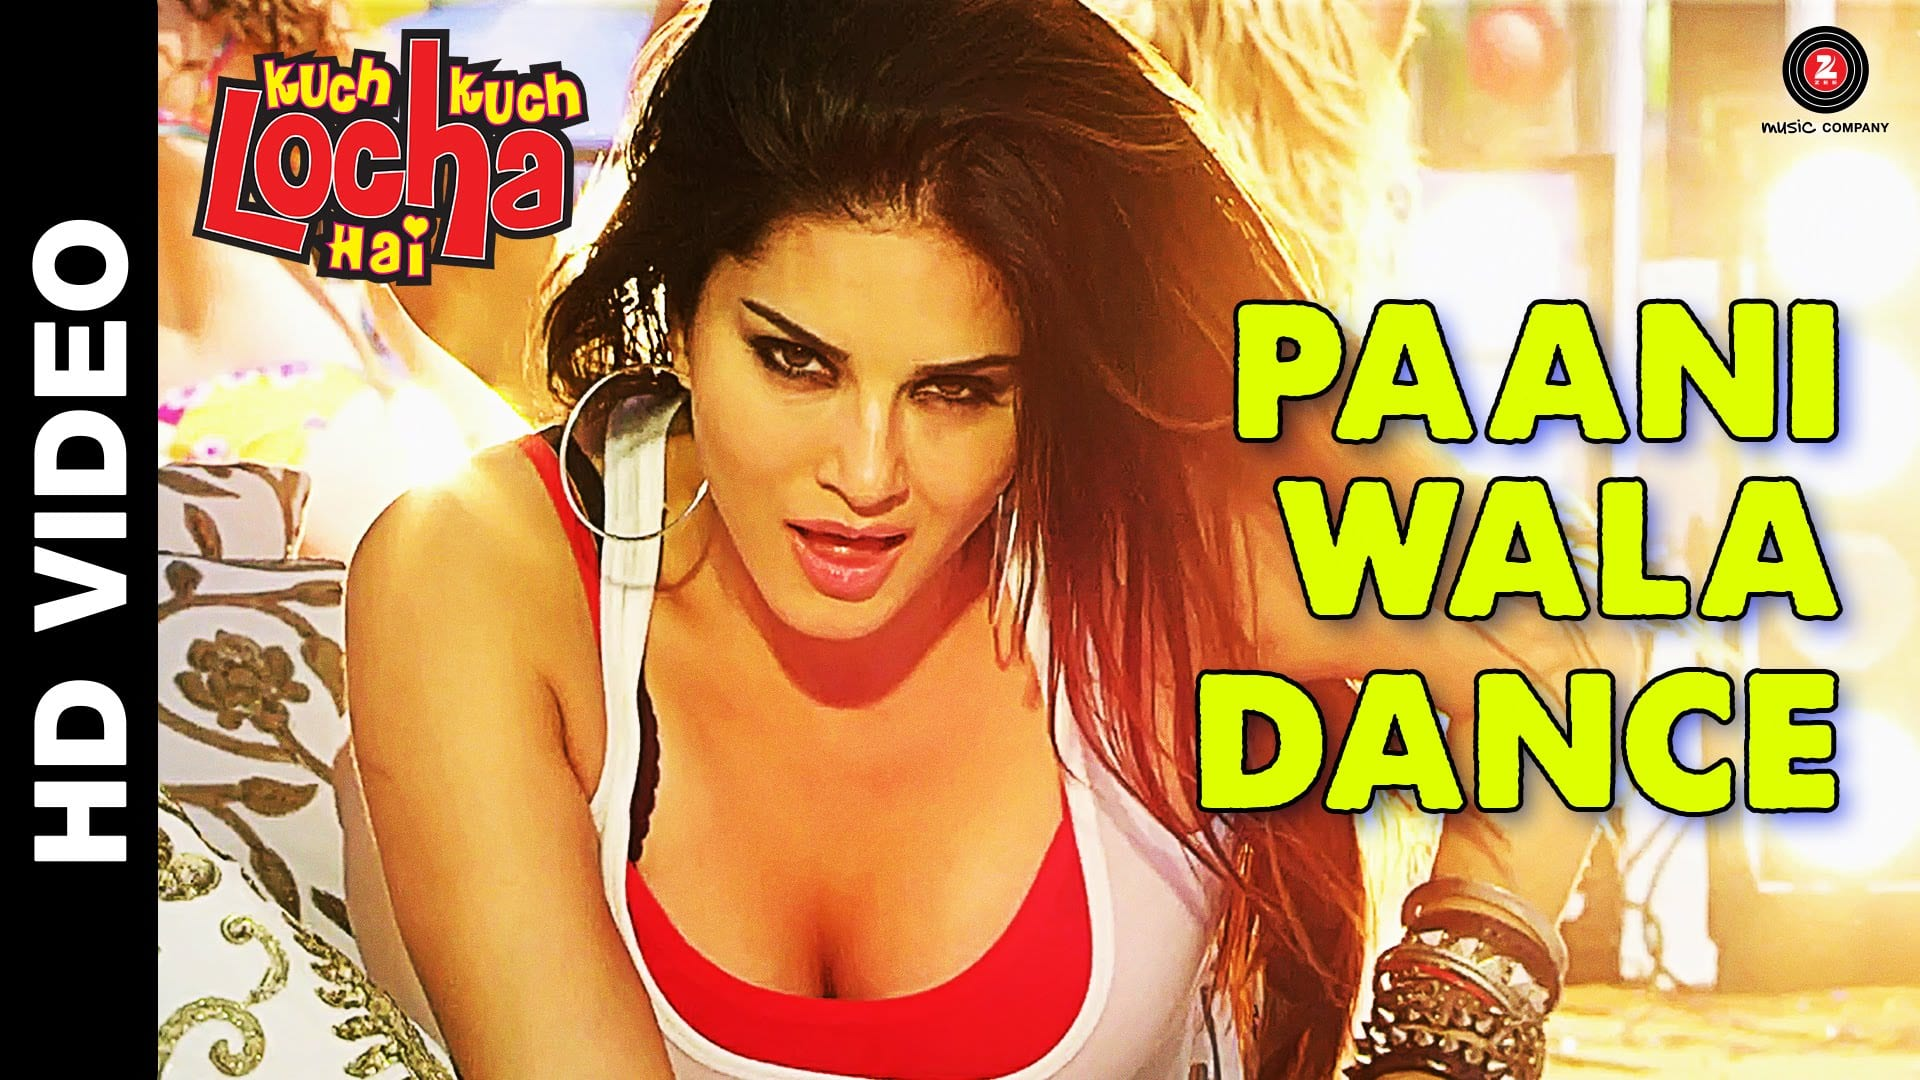 Paani Wala Dance Video Song | Kuch Kuch Locha Hai | Official HD full video song